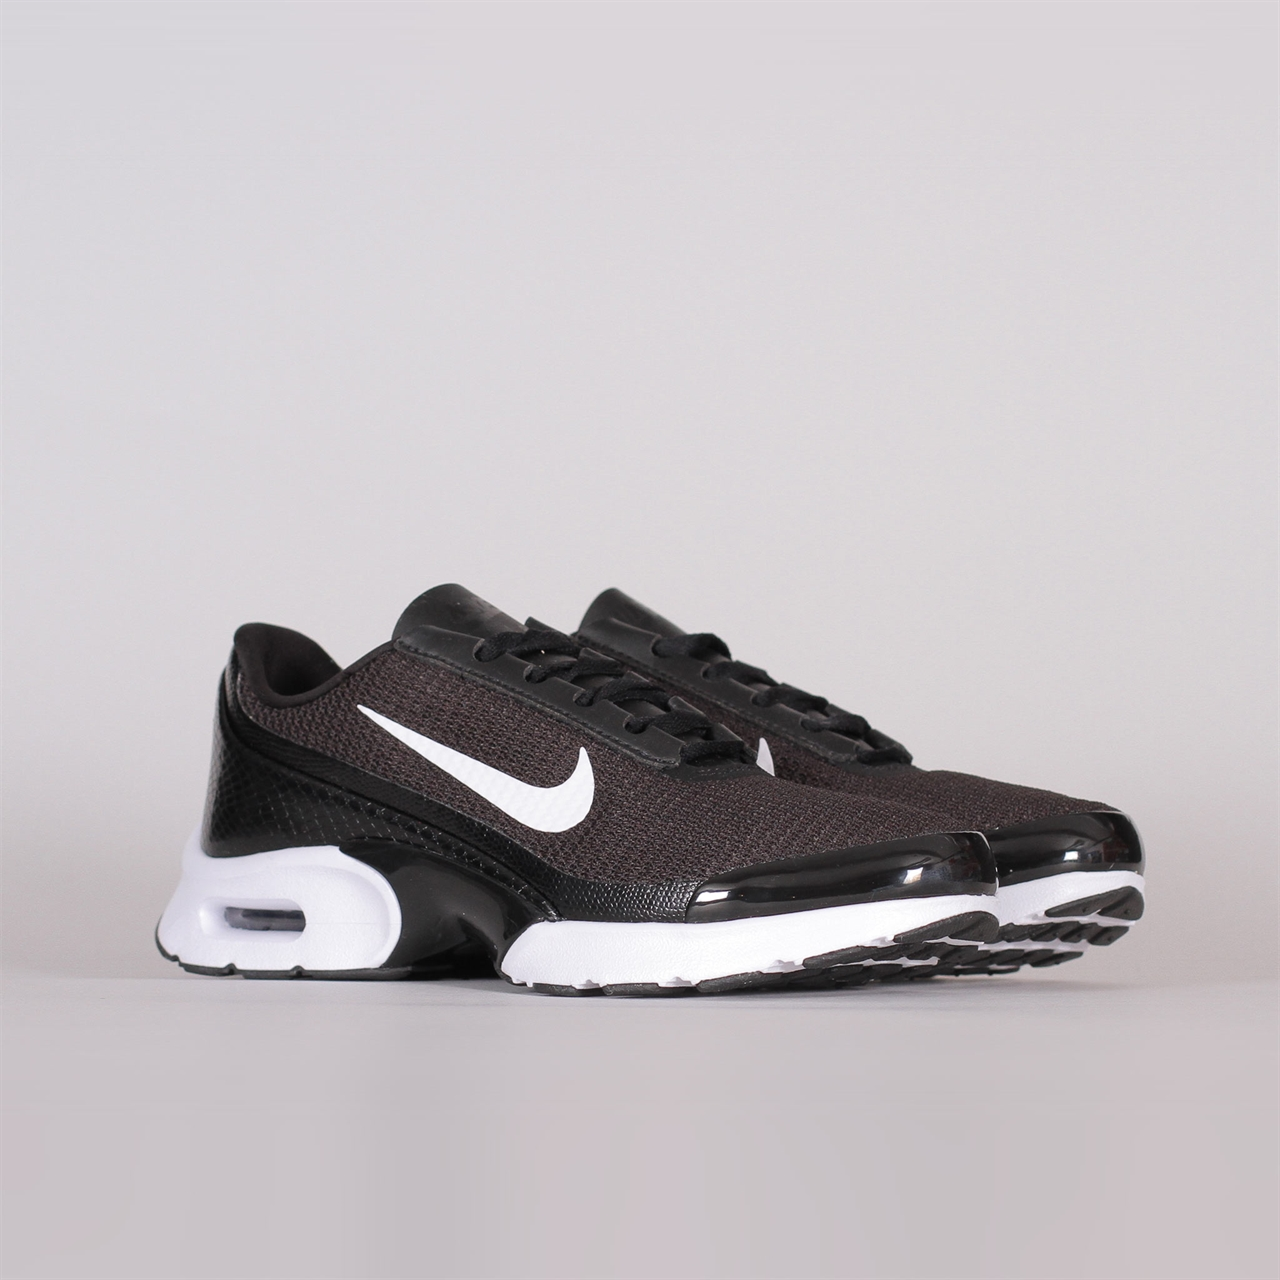 Shelta - Nike Sportswear Womens Air Max Jewel (896194-012) ac4abfe86f6b